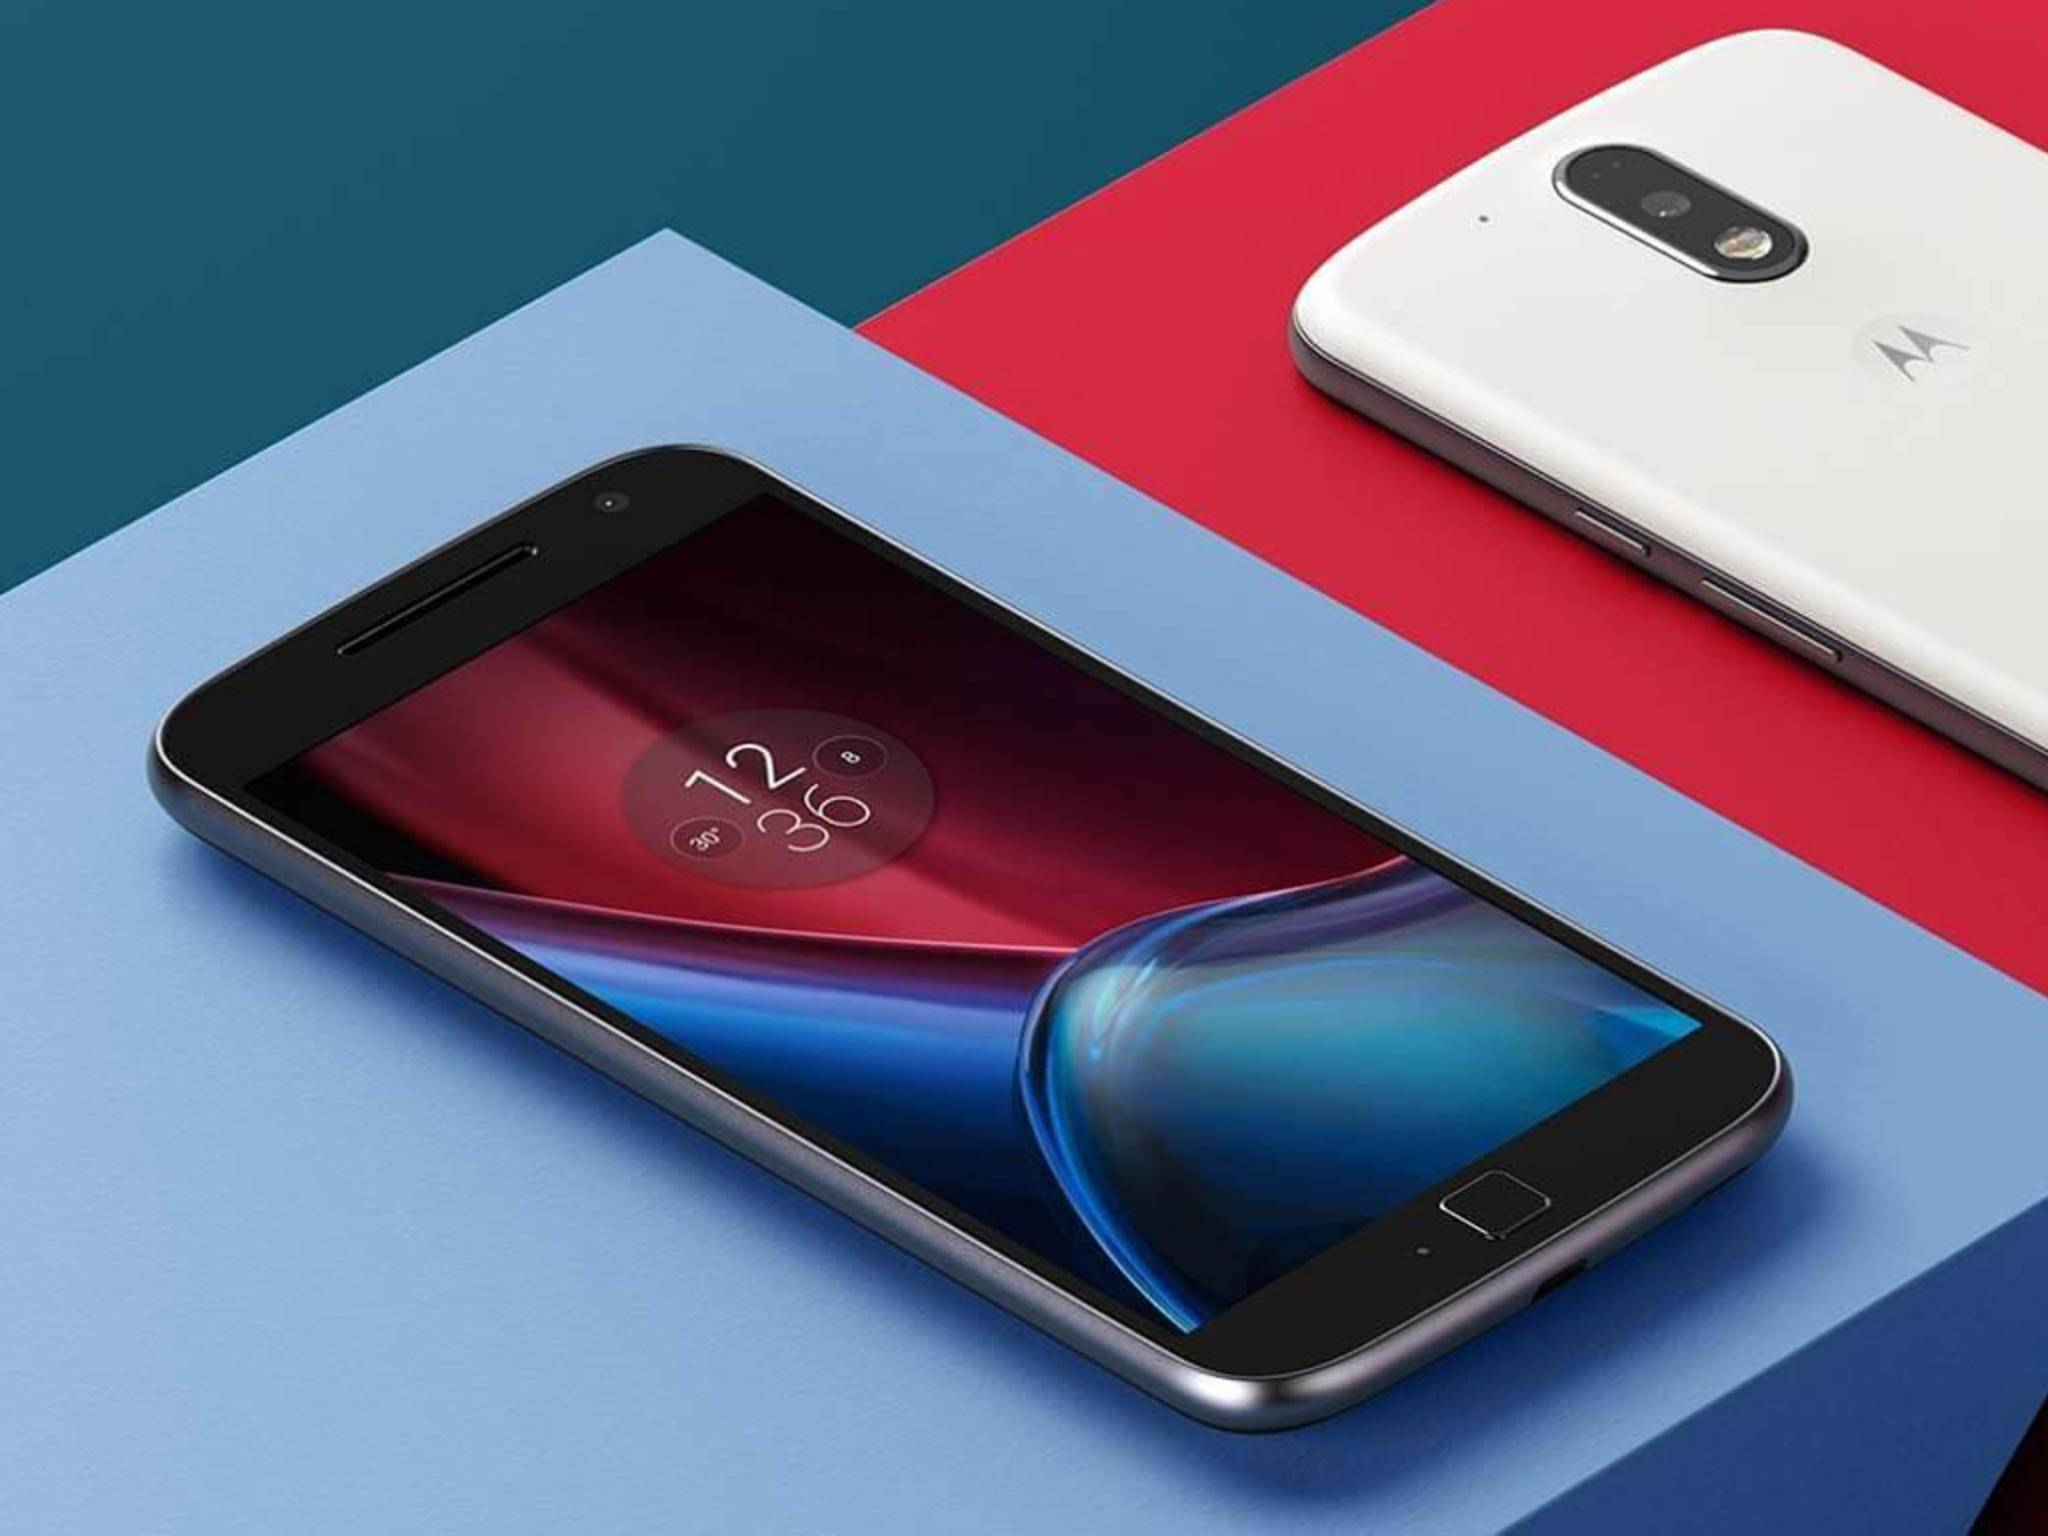 Motorola still has its promise: At the moment, Android 8.1 is testing Oreo Moto G4 and G4 Plus.